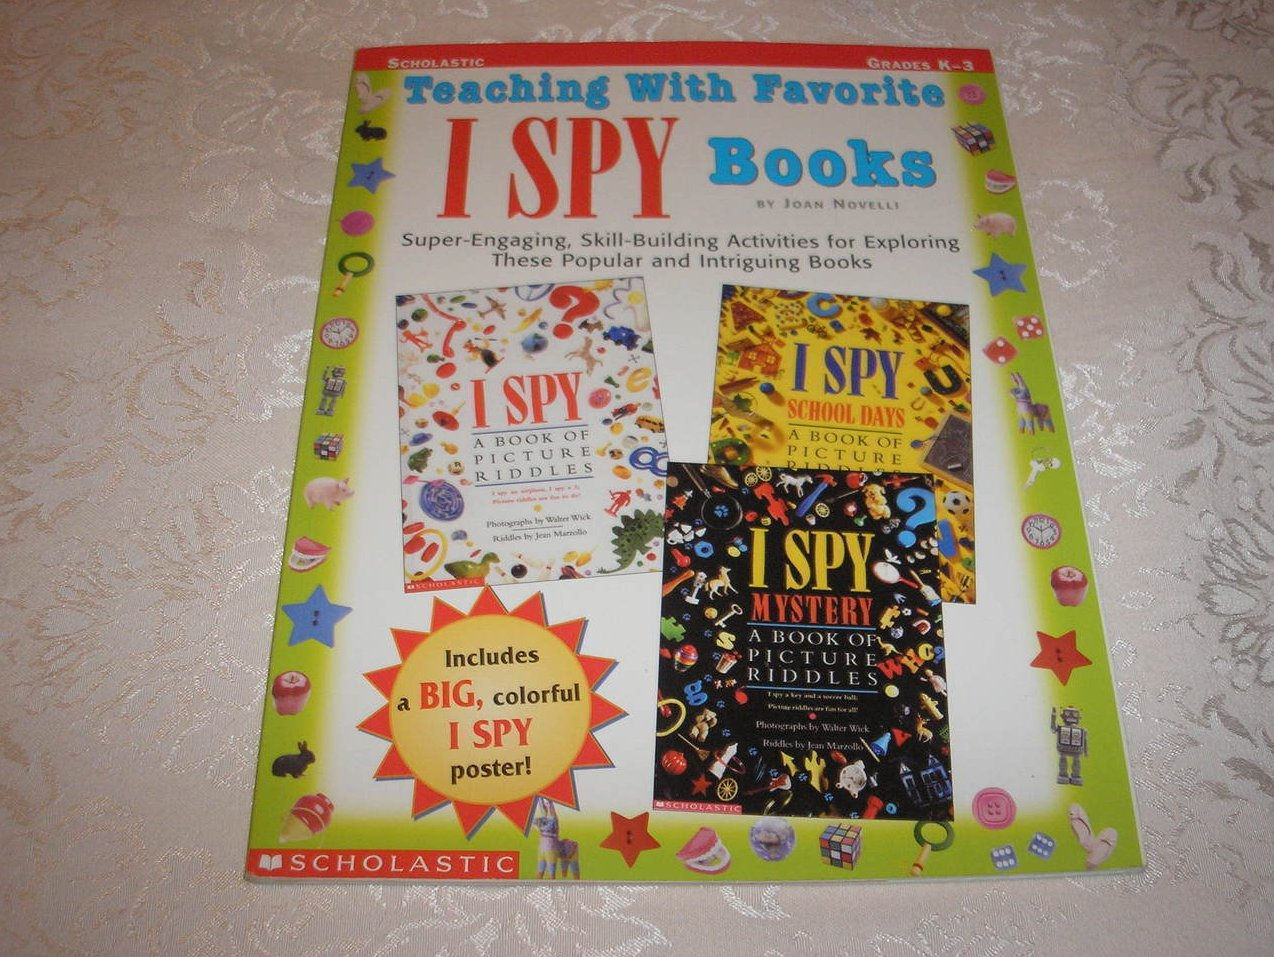 Teaching With Favorite I Spy Books brand new with poster included